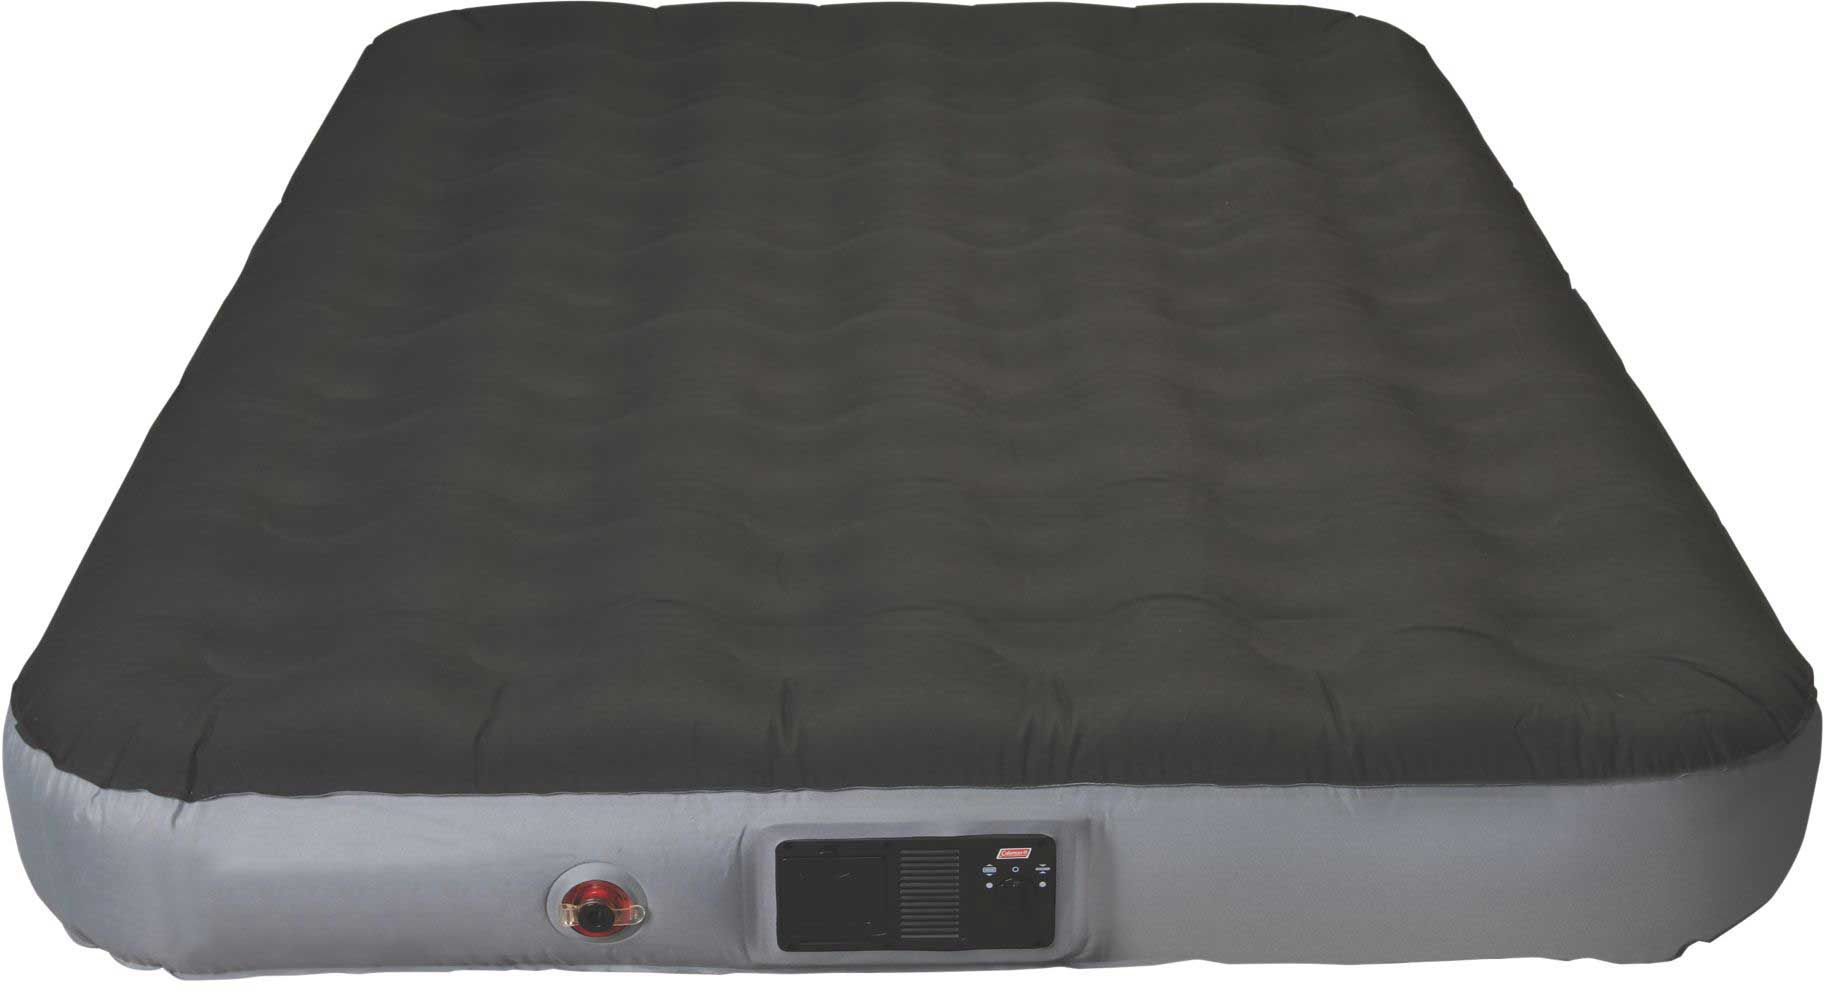 queen size air mattress coleman. Coleman River Gorge All-Terrain Queen Air Mattress | DICK\u0027S Sporting Goods Size